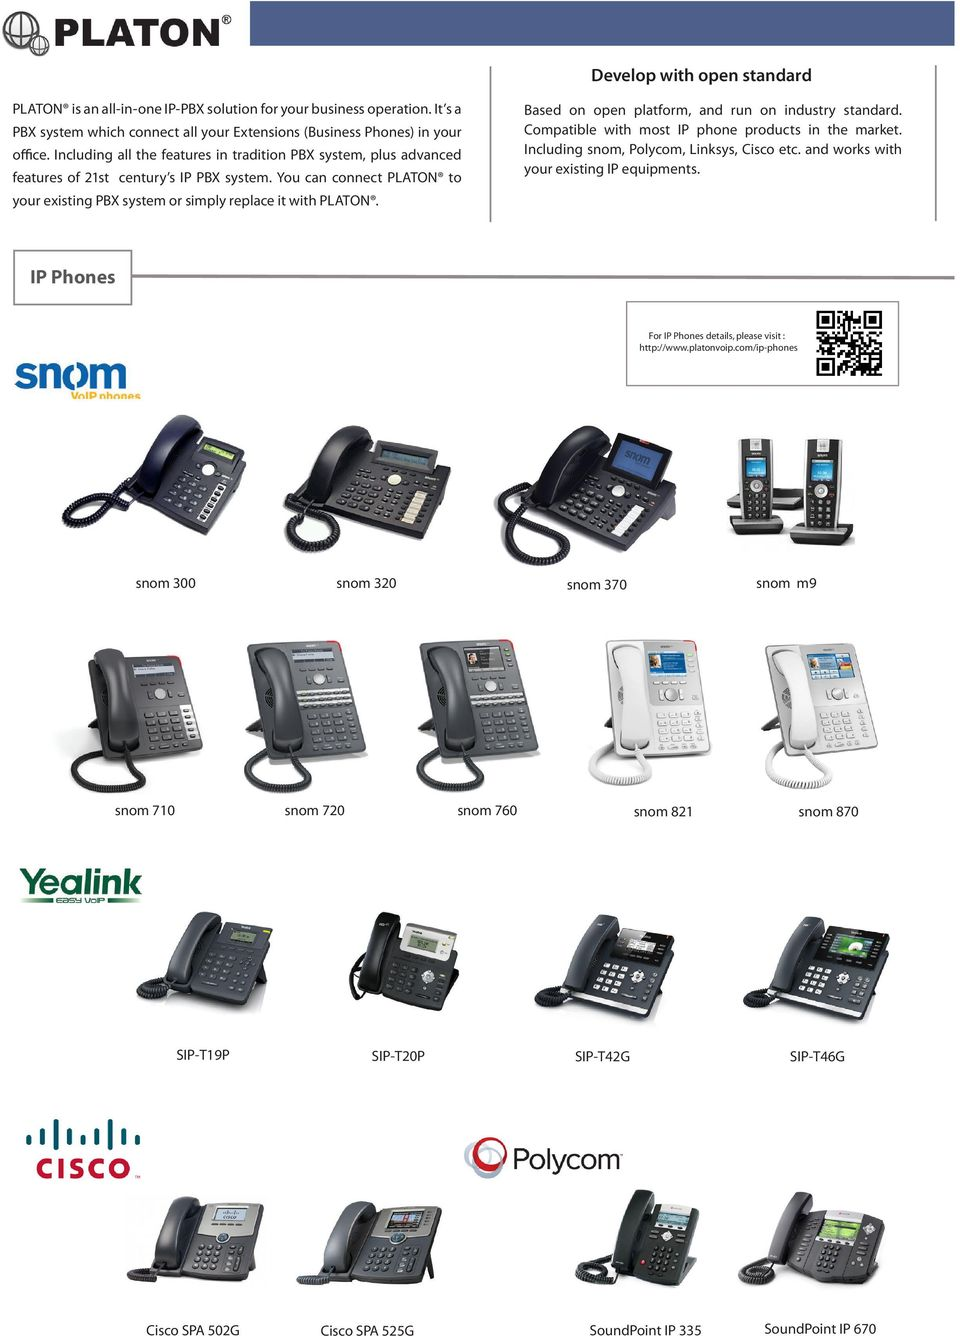 Compatible with most IP phone products in the market. Including snom, Polycom, Linksys, Cisco etc. and works with your existing IP equipments.